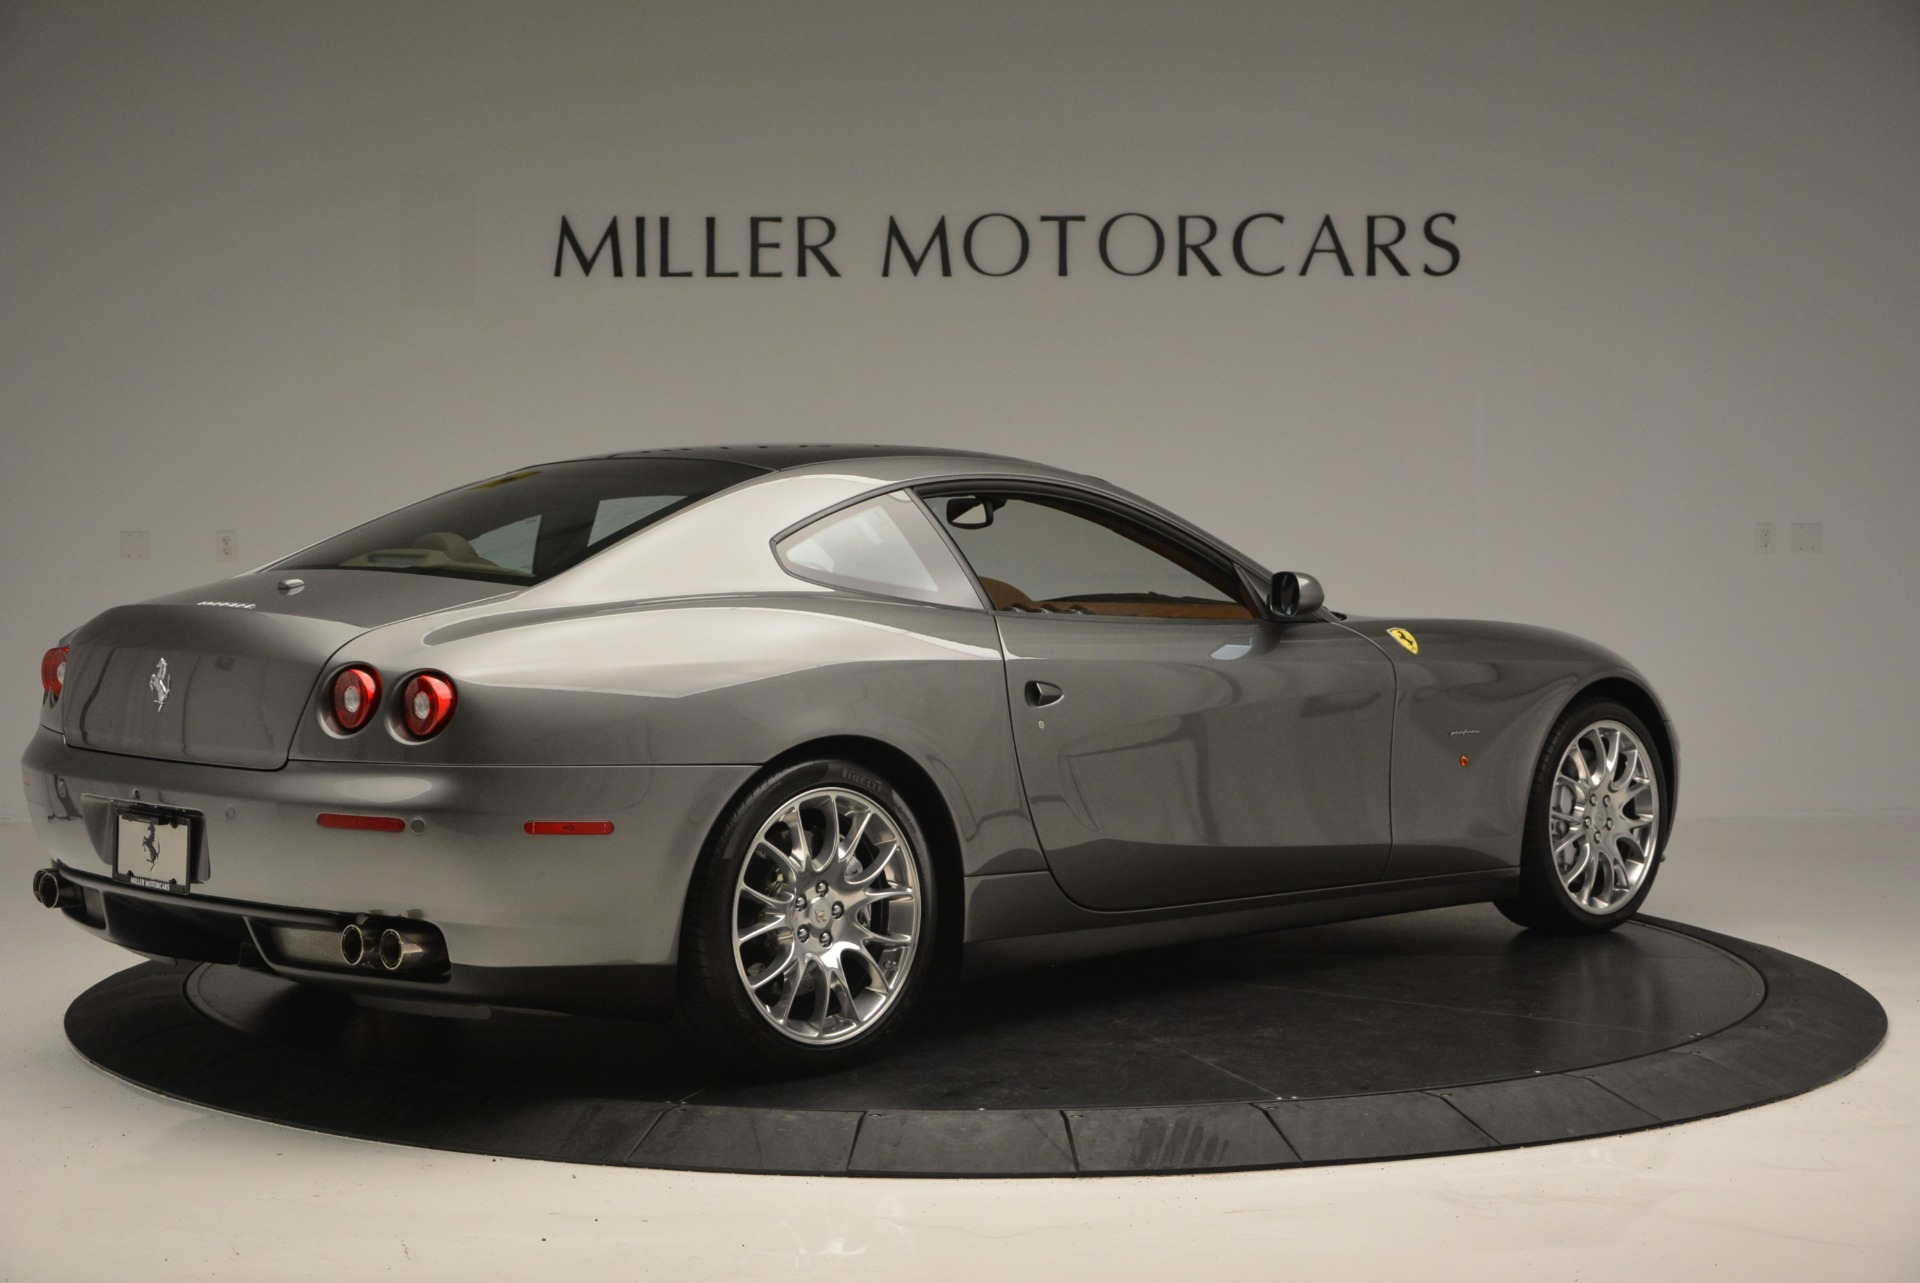 Used 2009 Ferrari 612 Scaglietti OTO For Sale In Greenwich, CT 141_p8